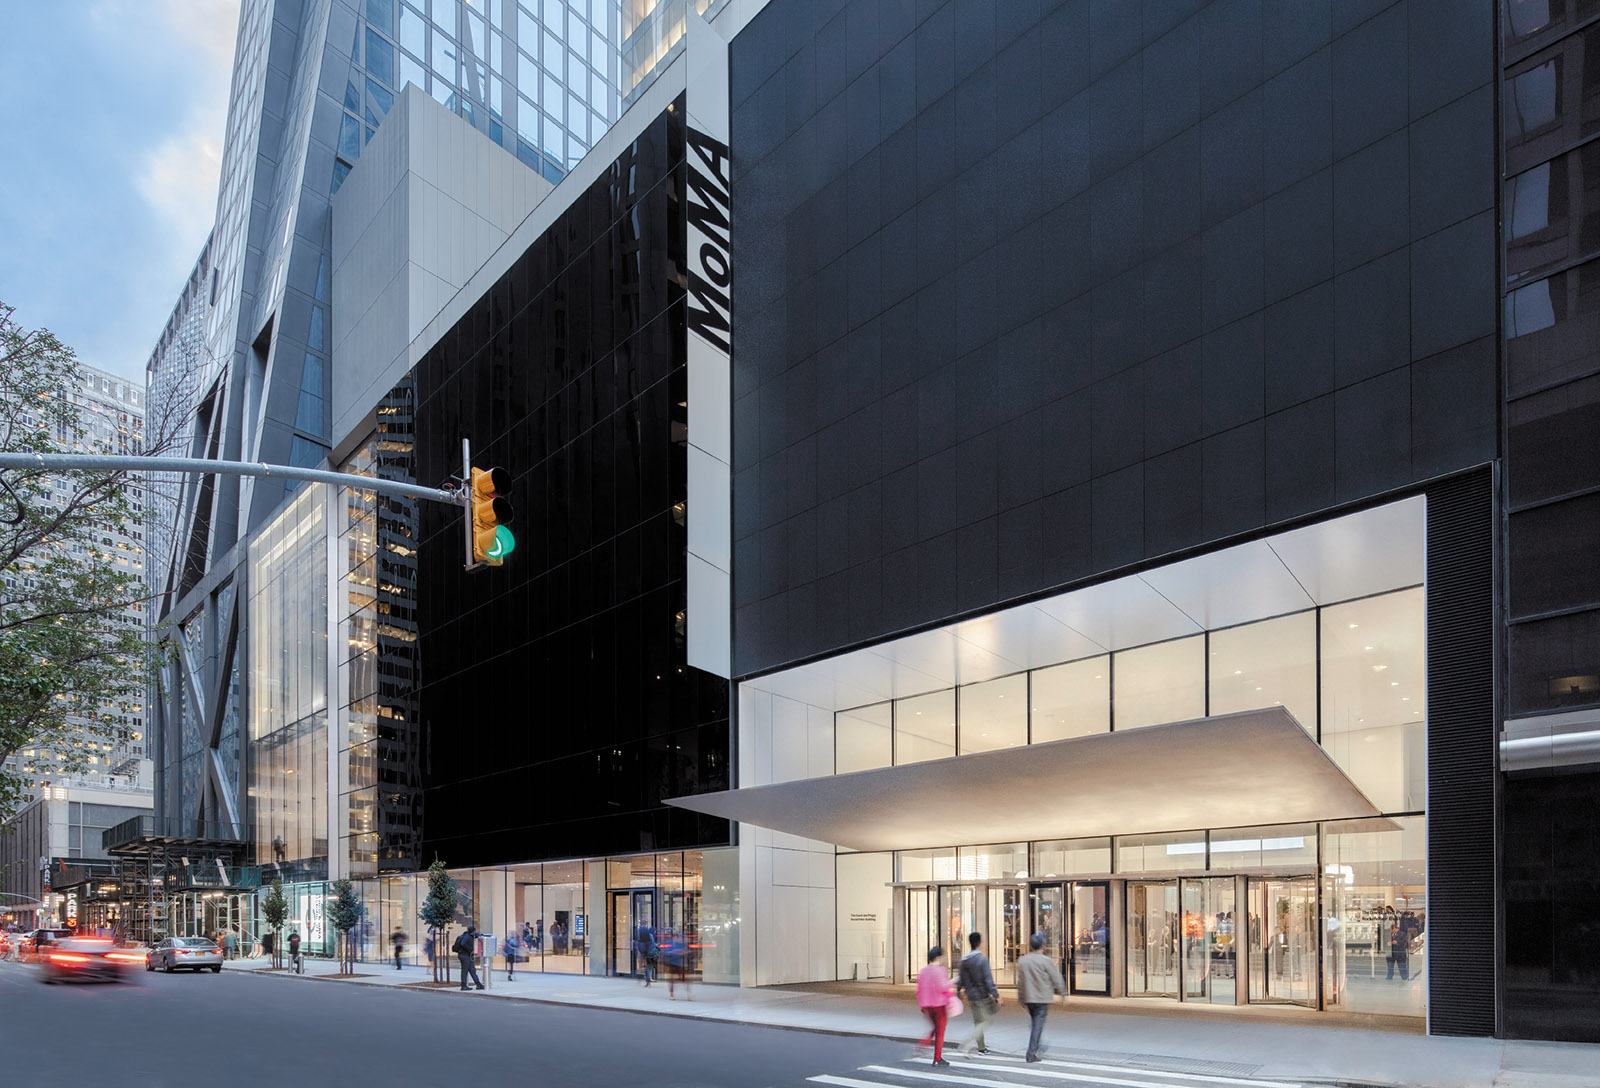 The exterior of the newly renovated MoMA, showing the expanded lobby and the base of 53W53, a new tower designed by Jean Nouvel, whose second through fifth floors are occupied by the museum, October 2019